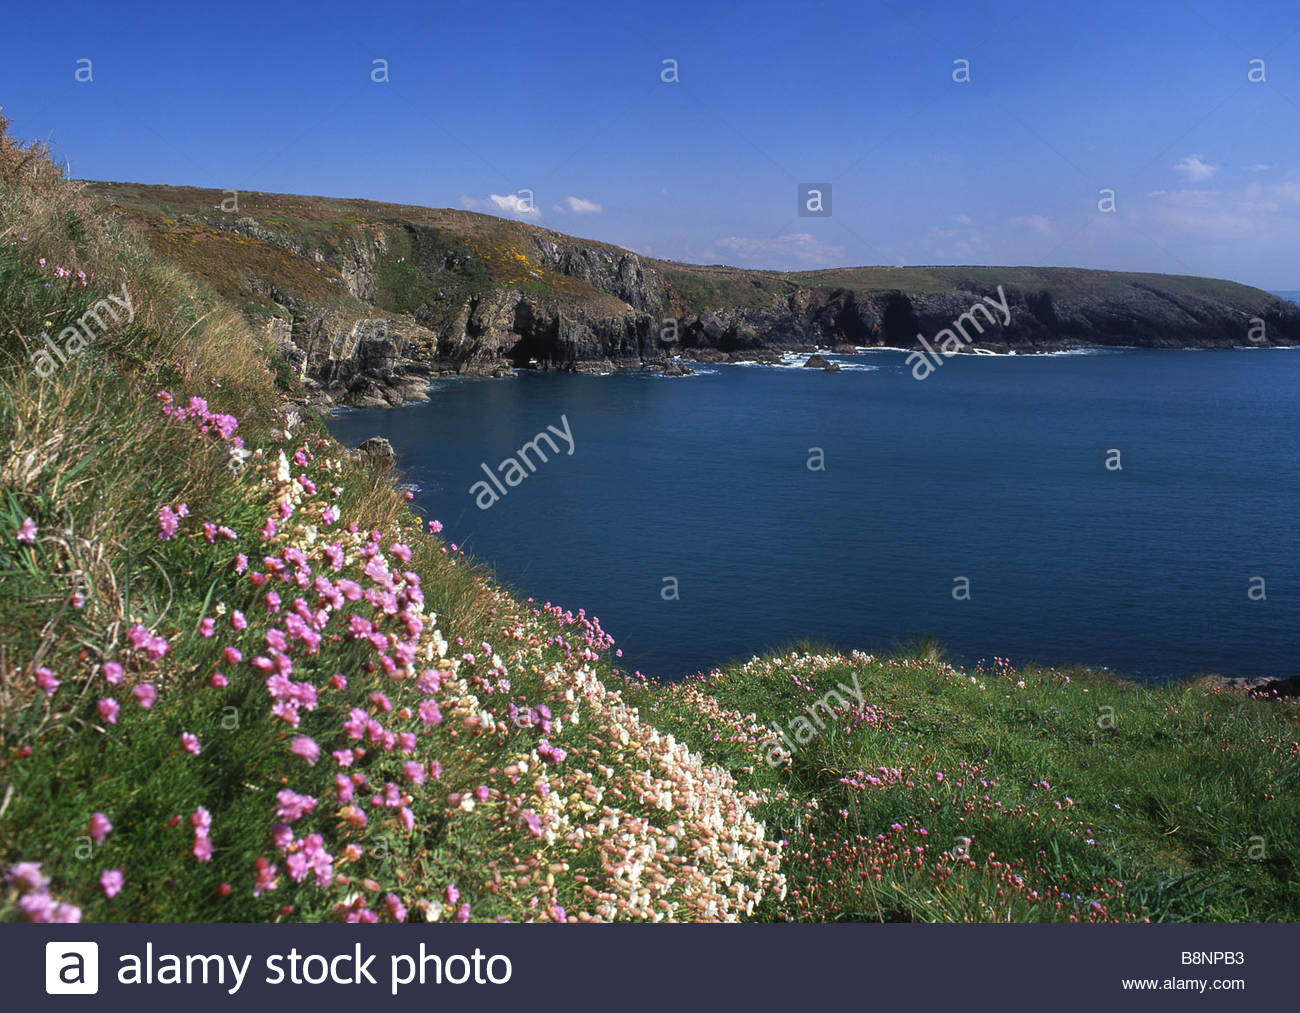 St Non's Bay St Davids (Tyddewi), St Non's Bay in springtime with thrift (sea pink) in foreground ...